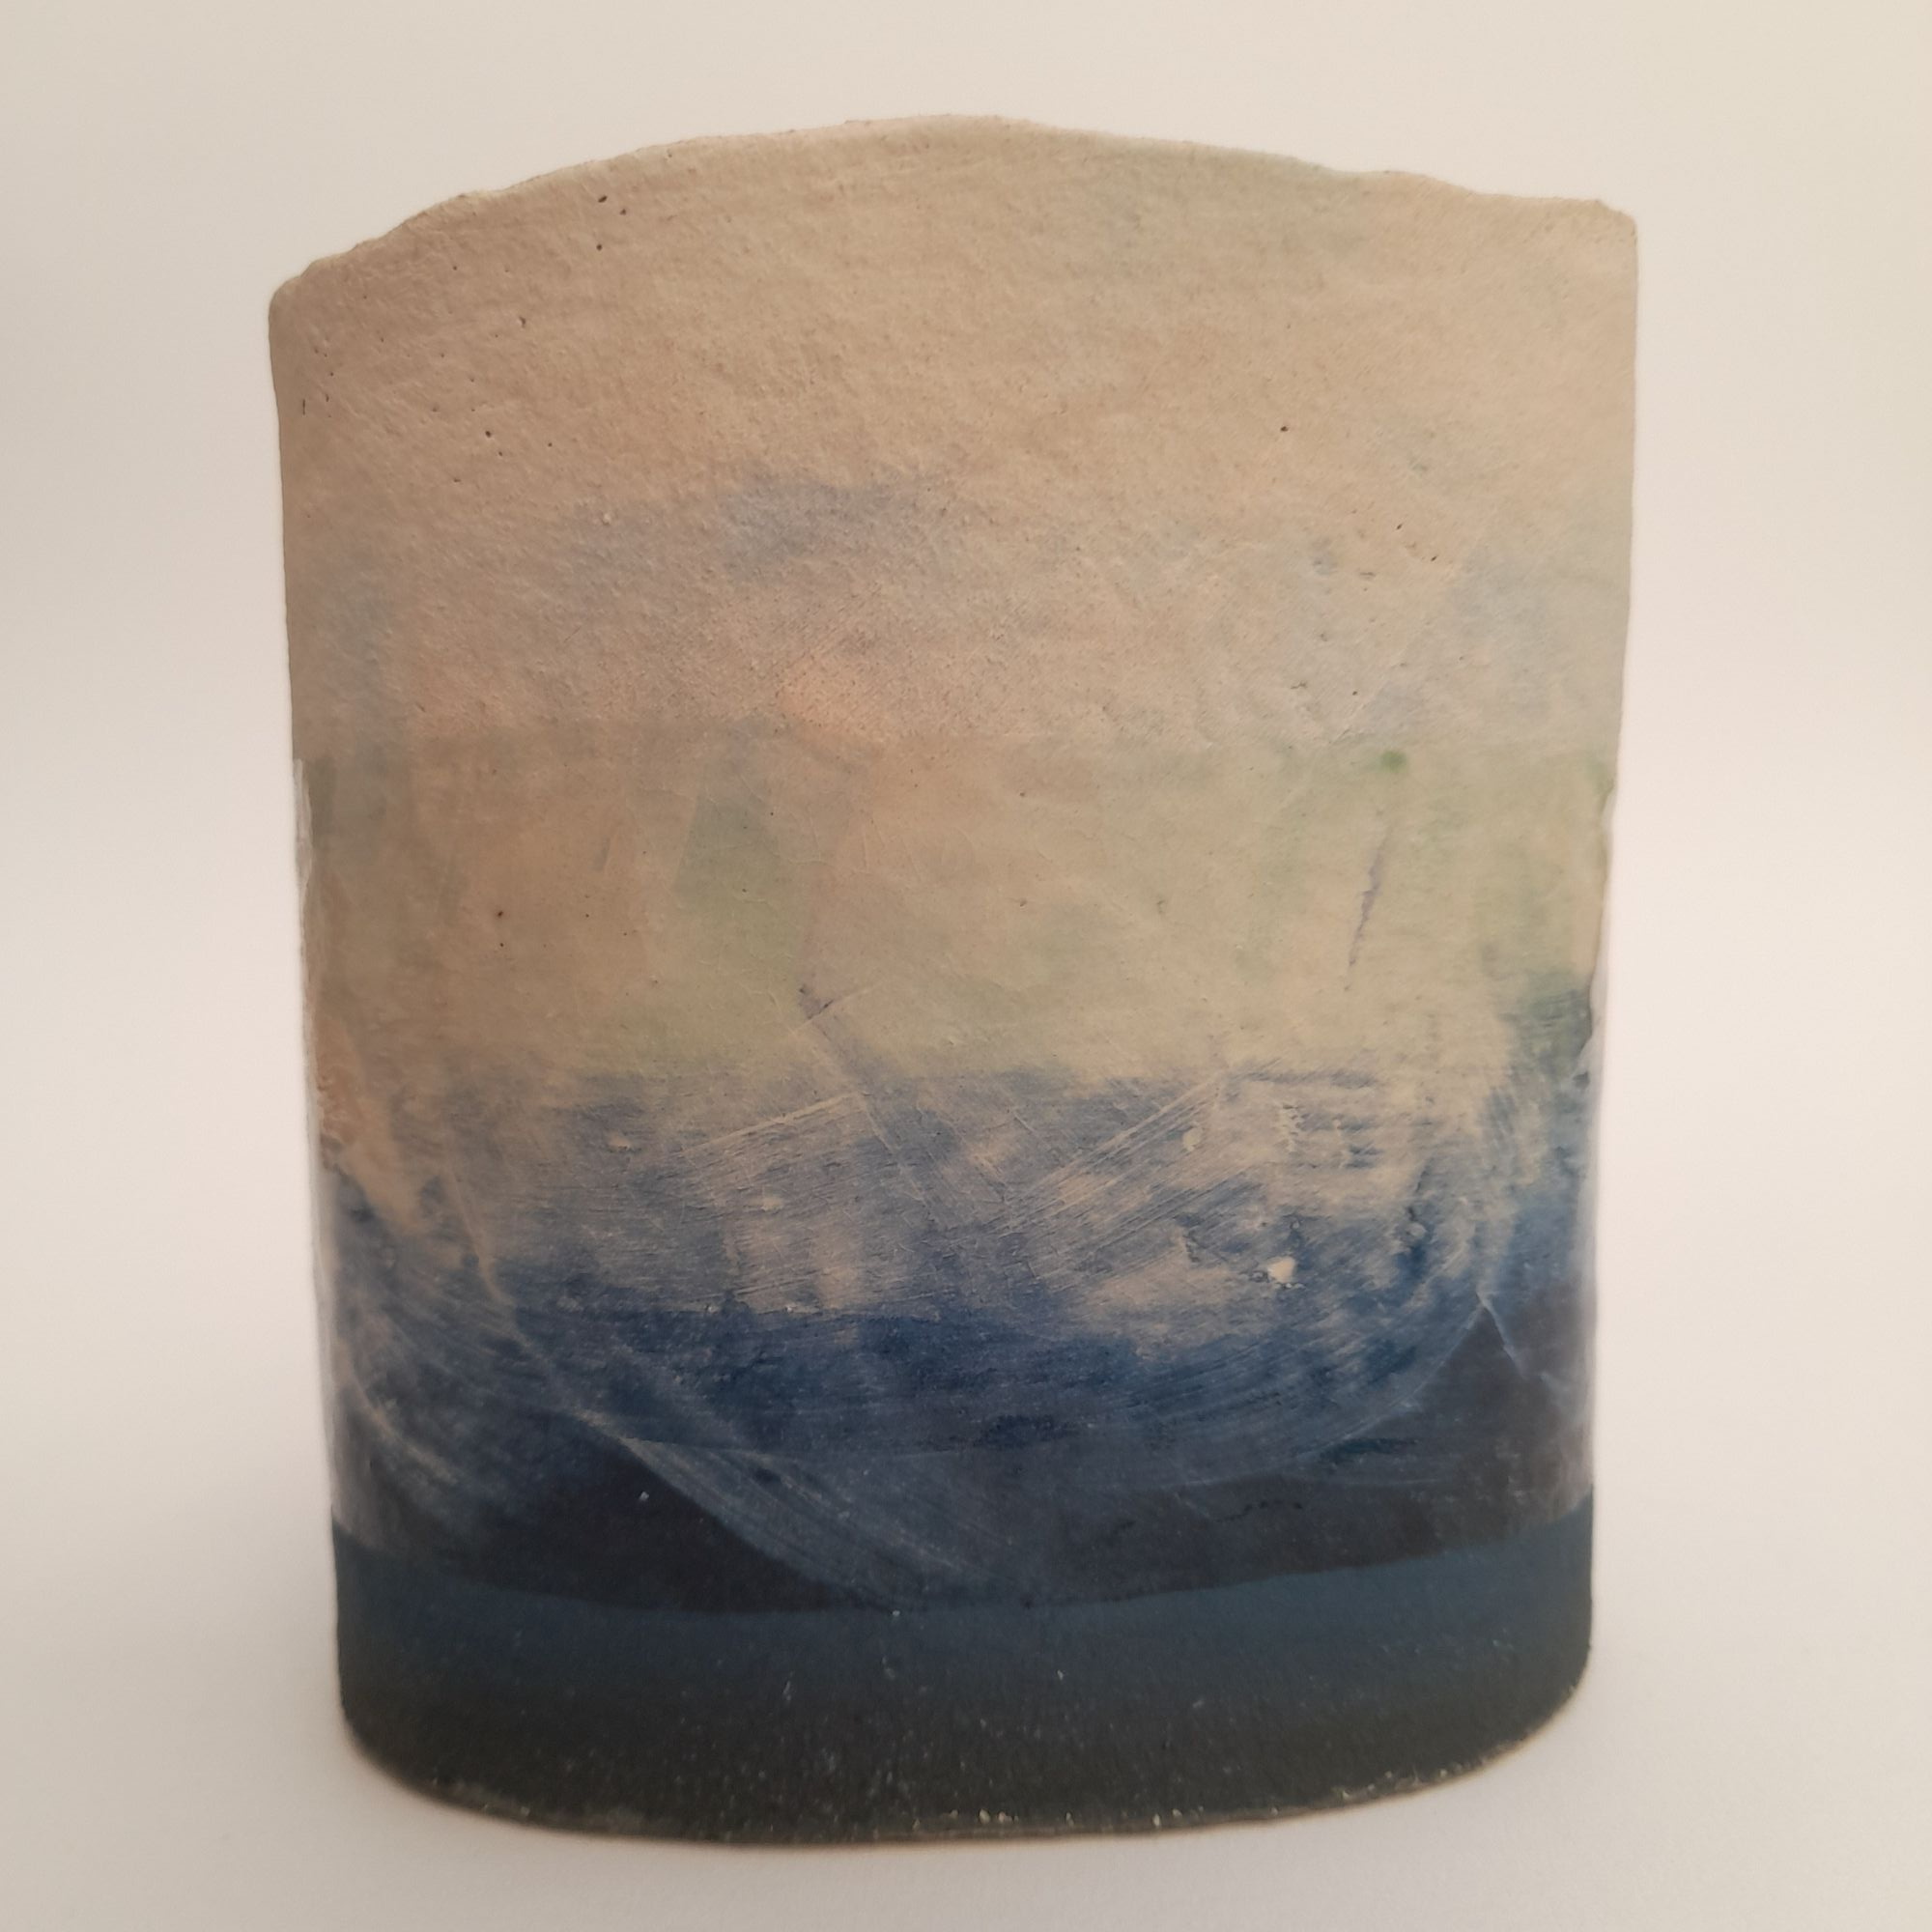 rough edged vase with seascape on sides